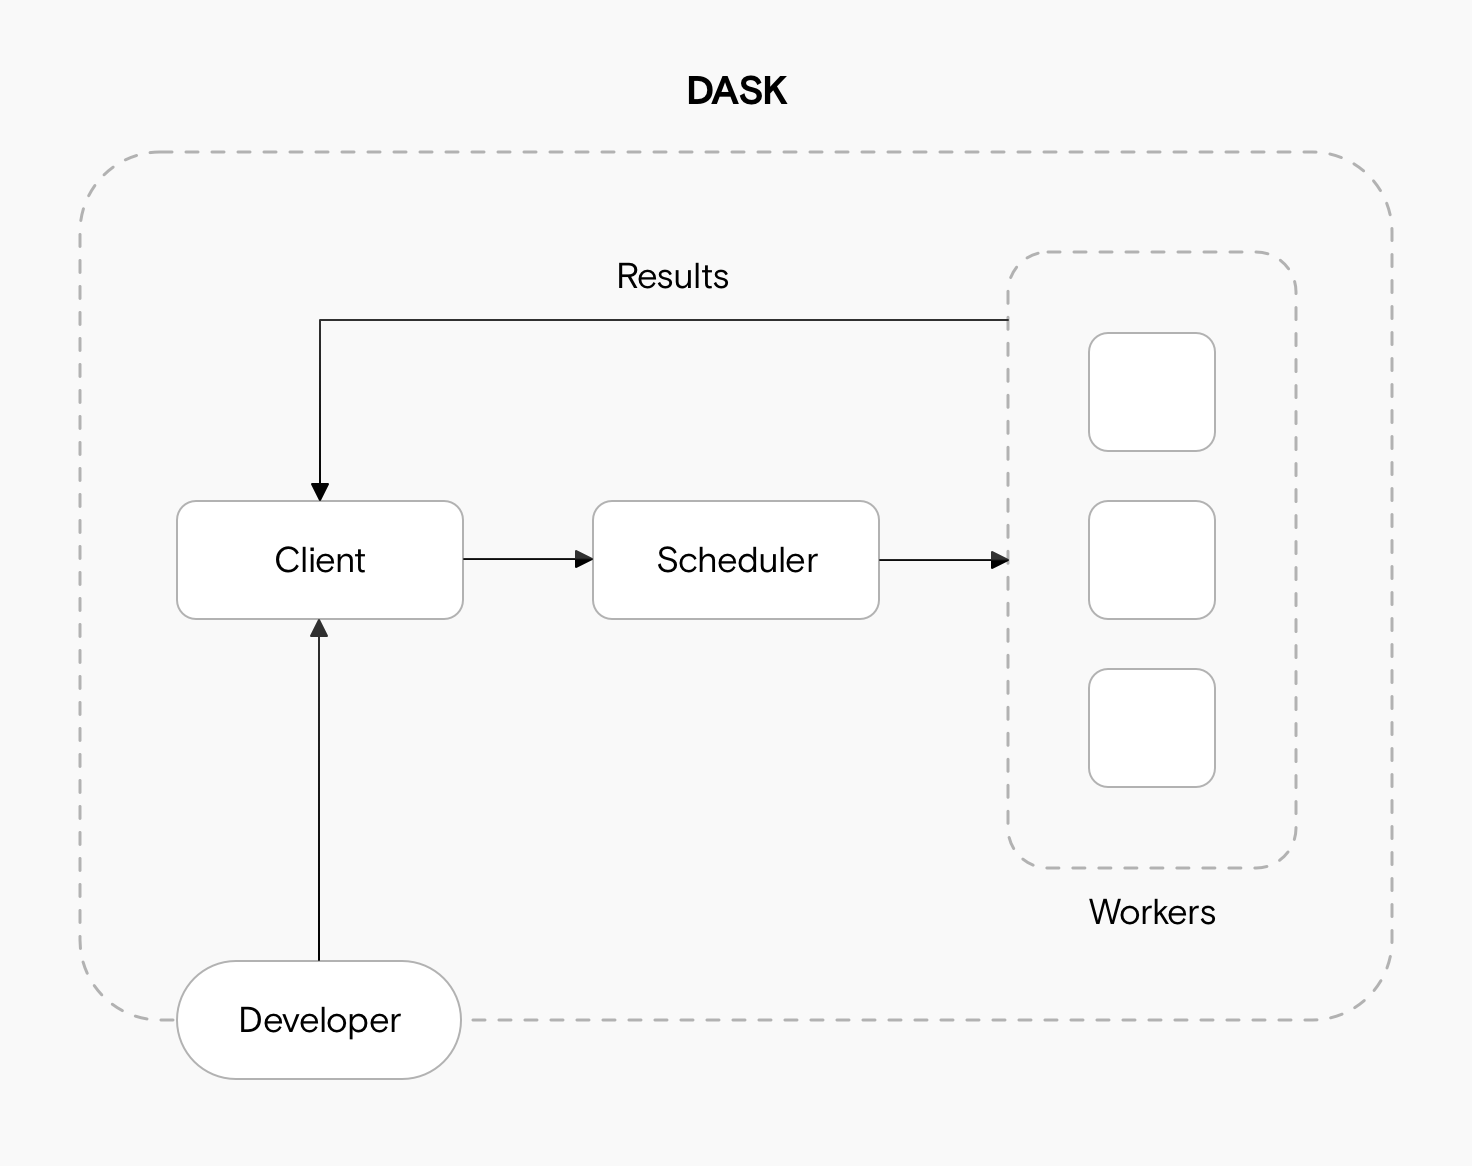 A diagram showing a developer connected to a client, connected to a scheduler. The scheduler is connected to a collection of workers, which send results back to the client.